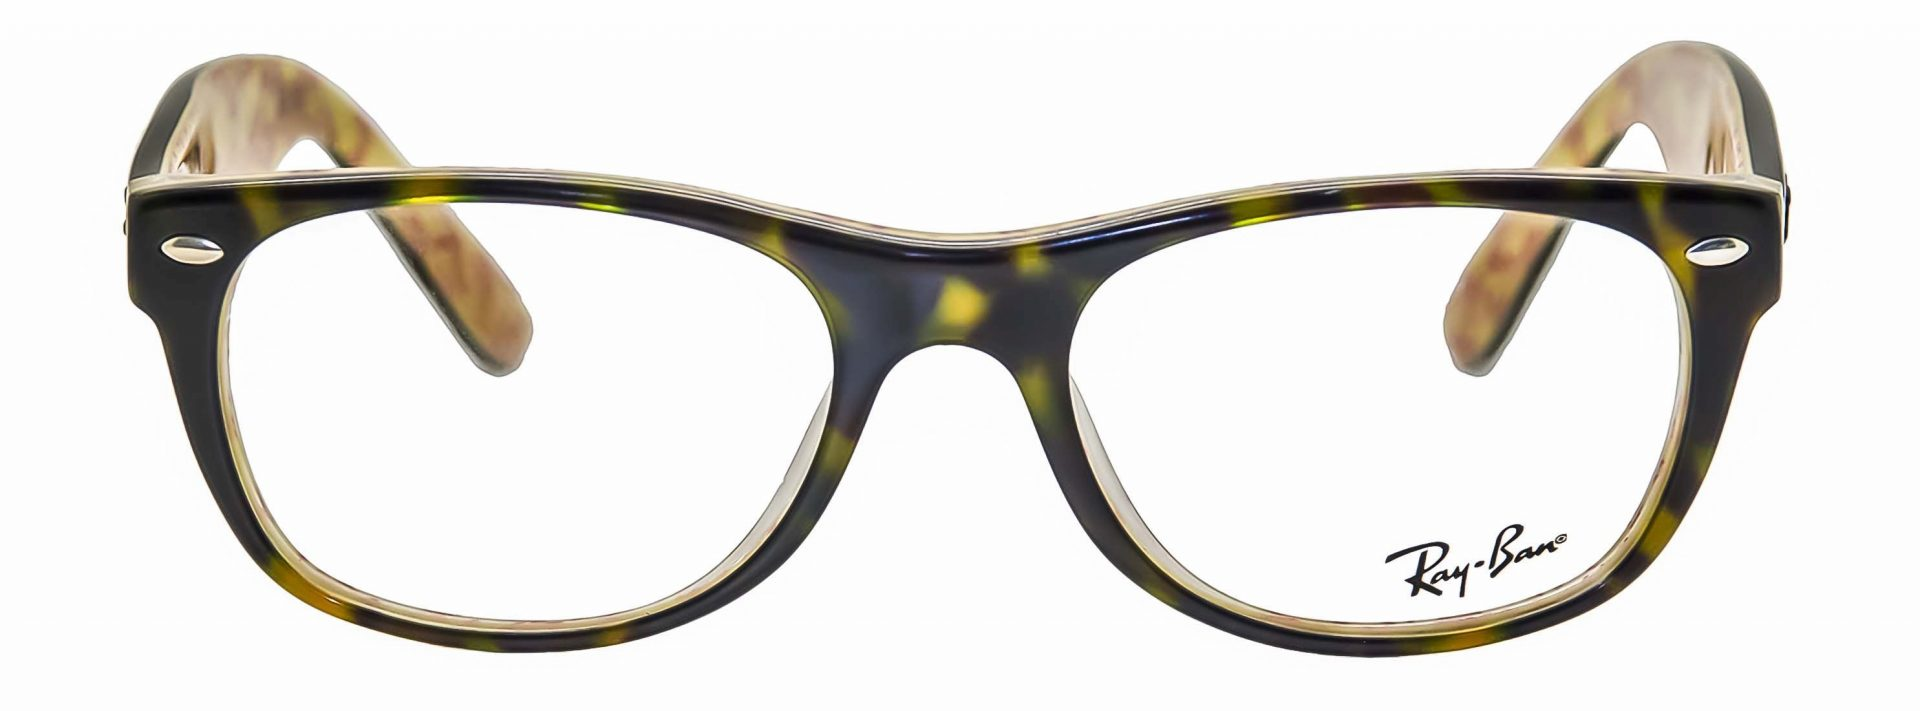 Ray-Ban spectacles 5184f 01 2970x1100